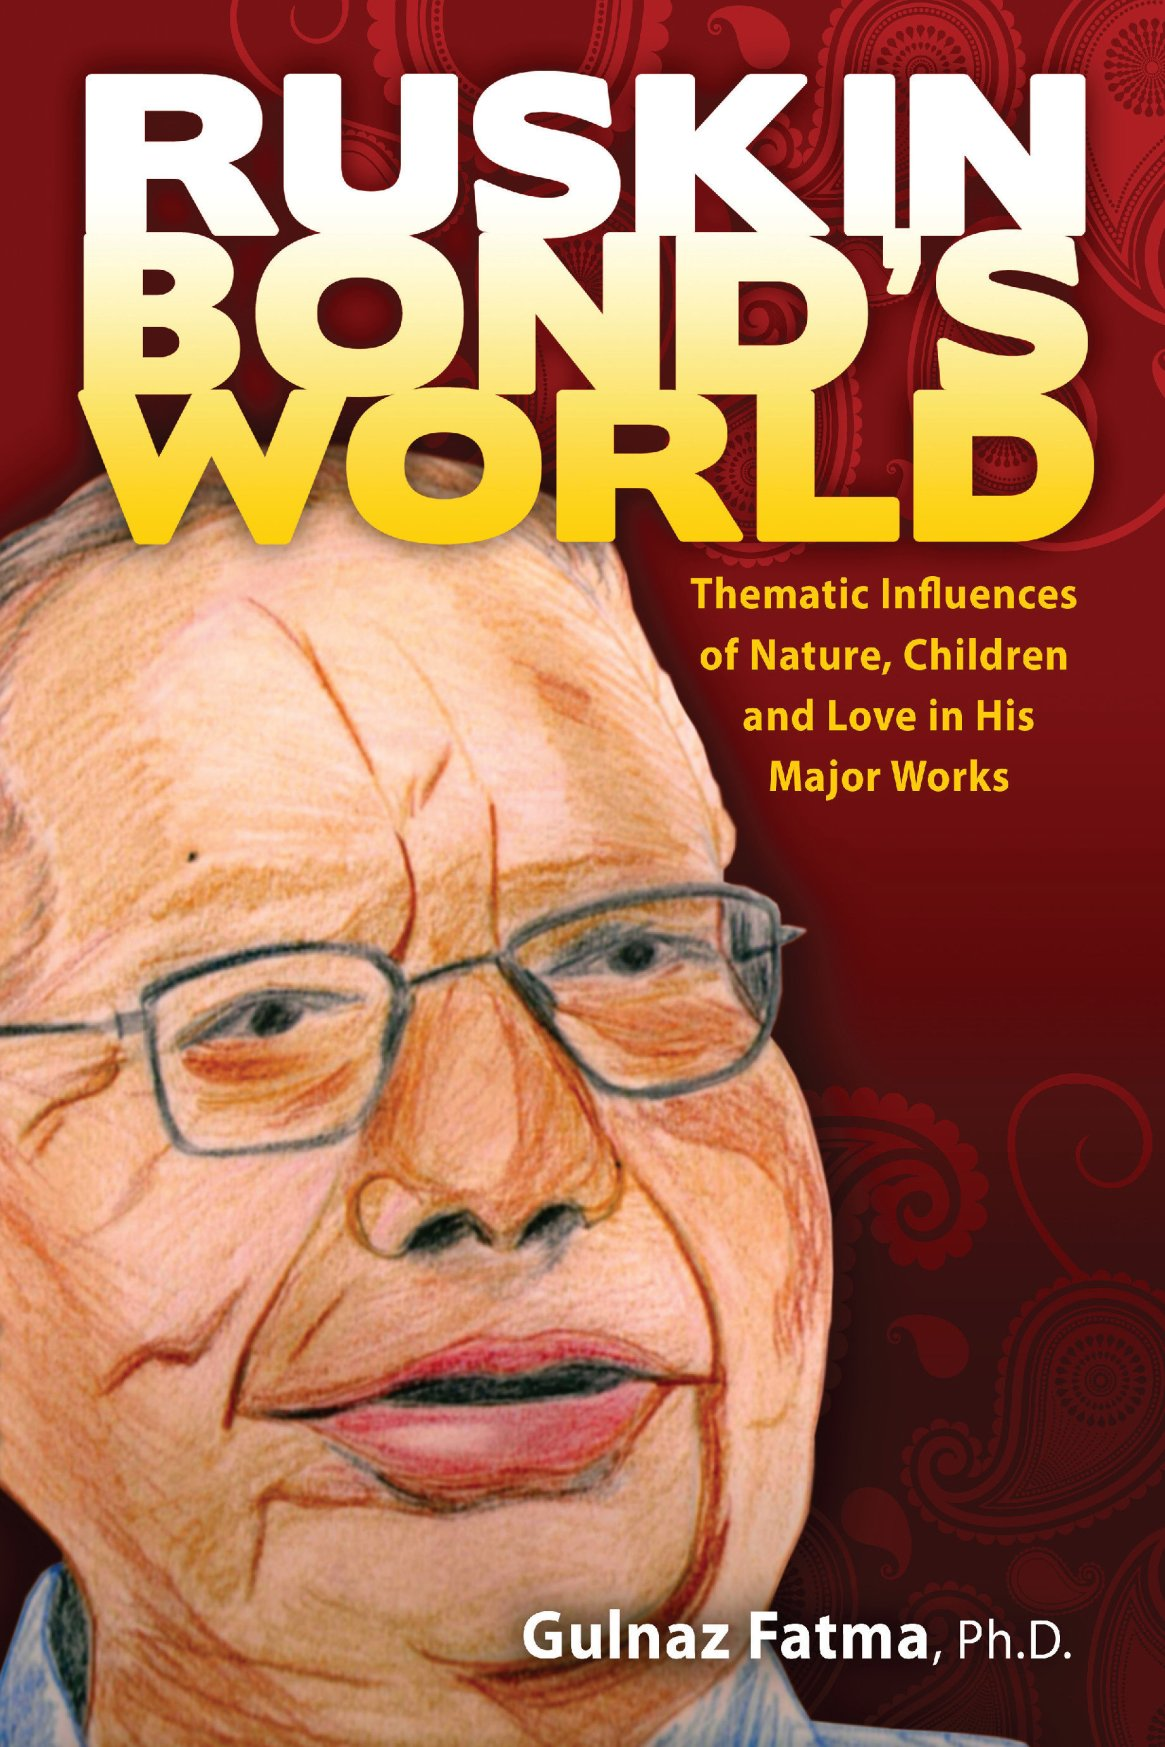 Ruskin Bond's World: Thematic Influences of Nature, Children, and Love in his Major Works 978-1-61599-199-0